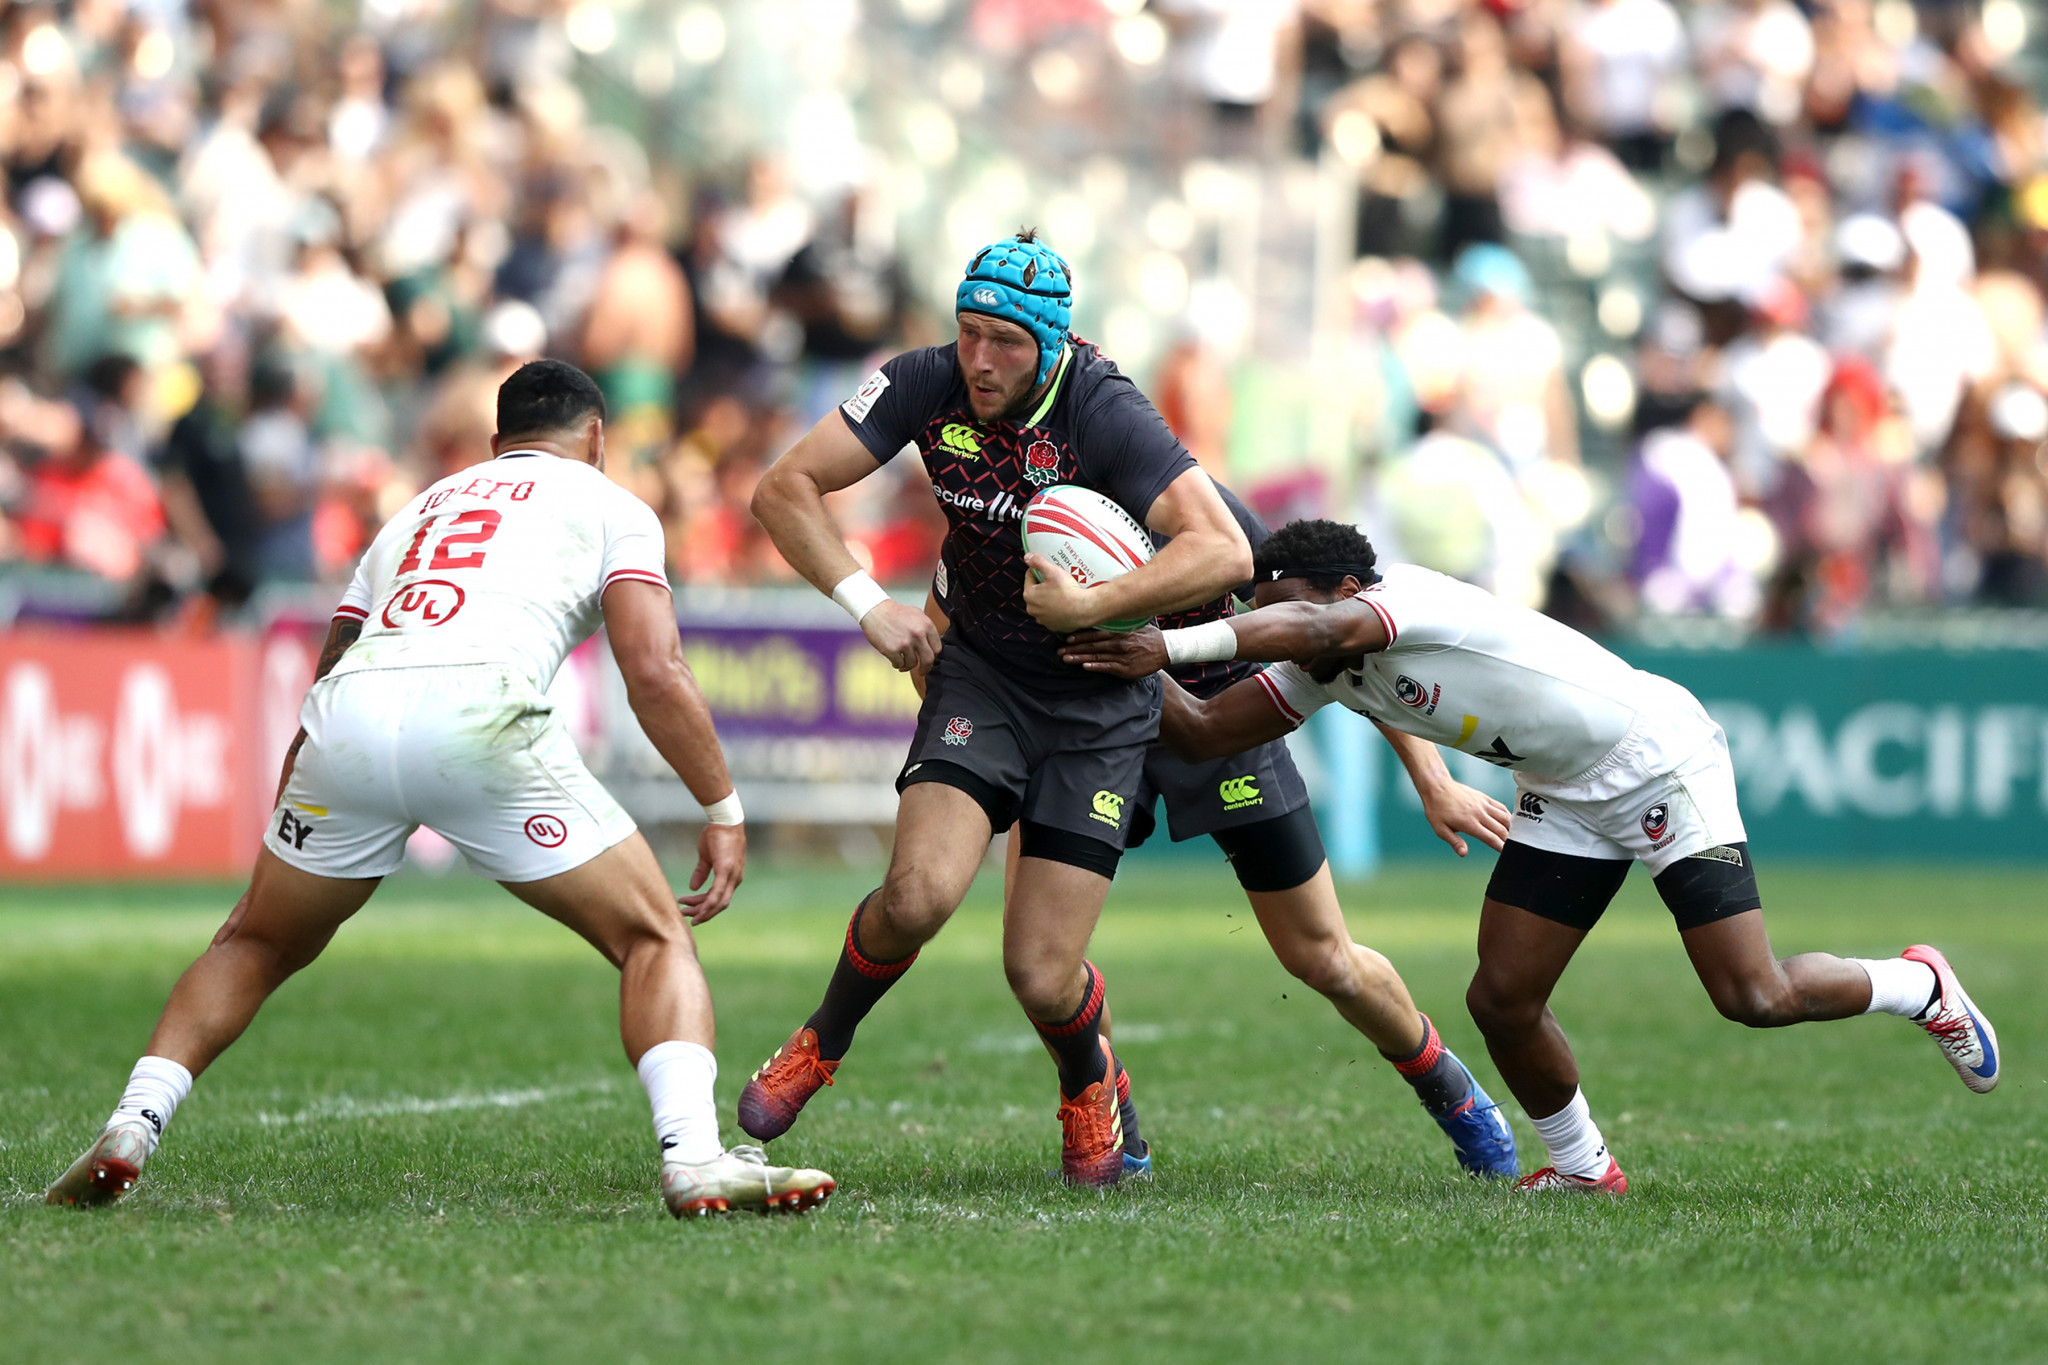 World Rugby Sevens Series leaders United States squeezed through to the quarter-finals of the Hong Kong Sevens, despite losing both of their pool matches today ©World Rugby